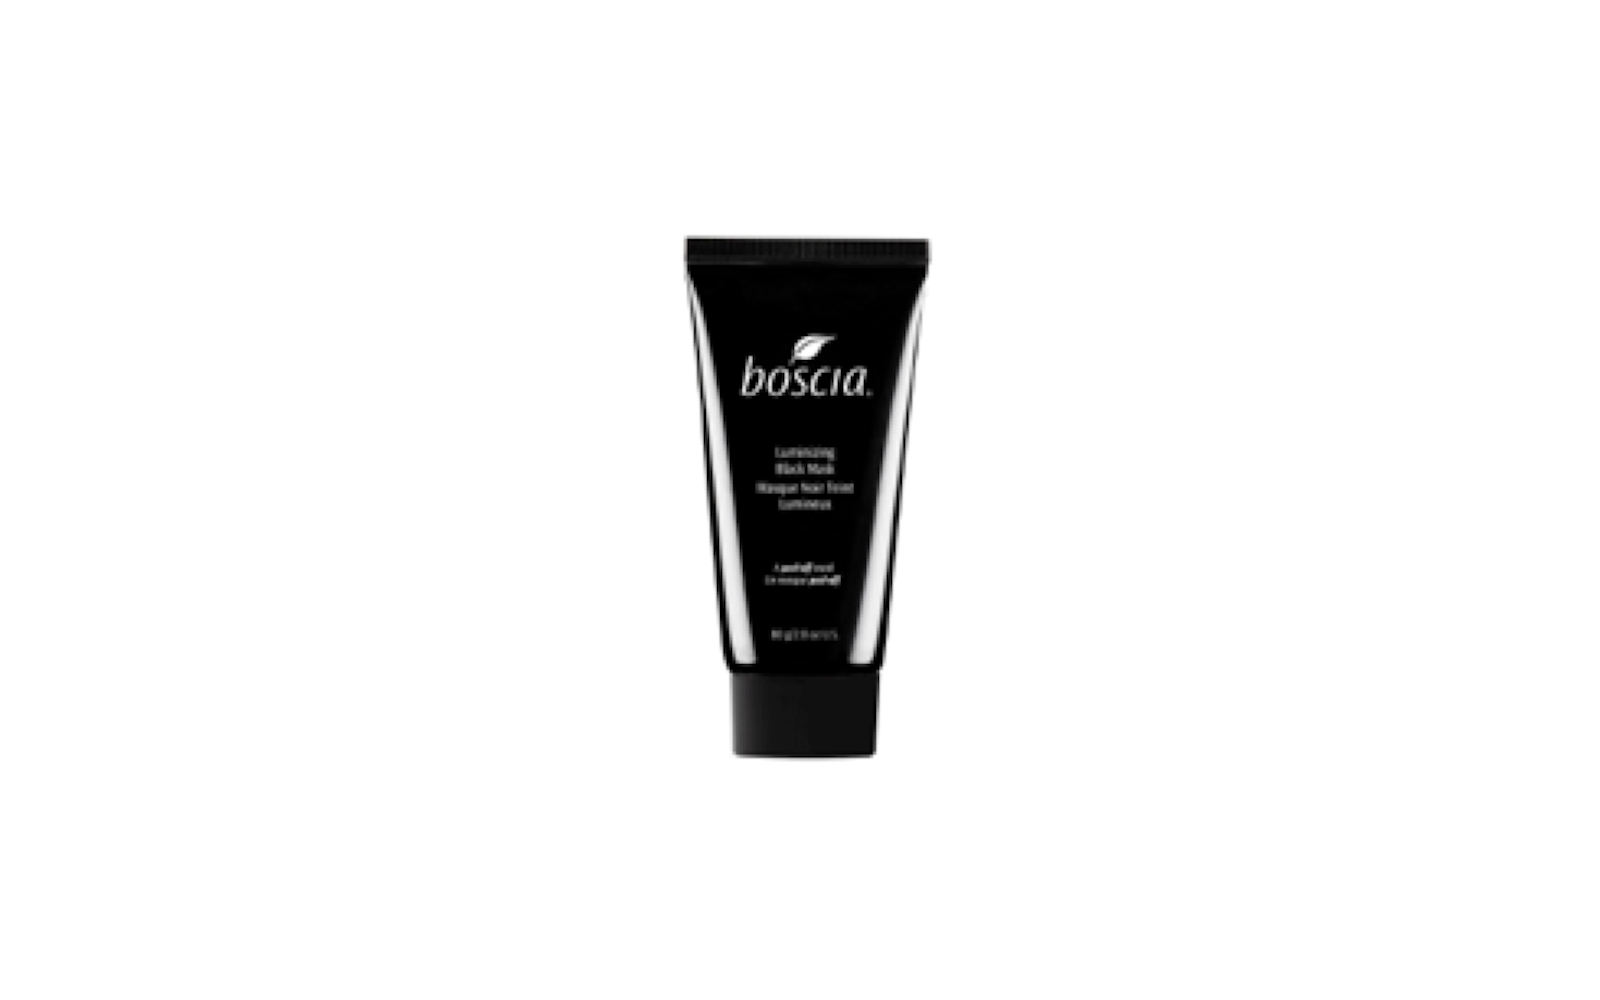 boscia-black-charcoal-face-mask